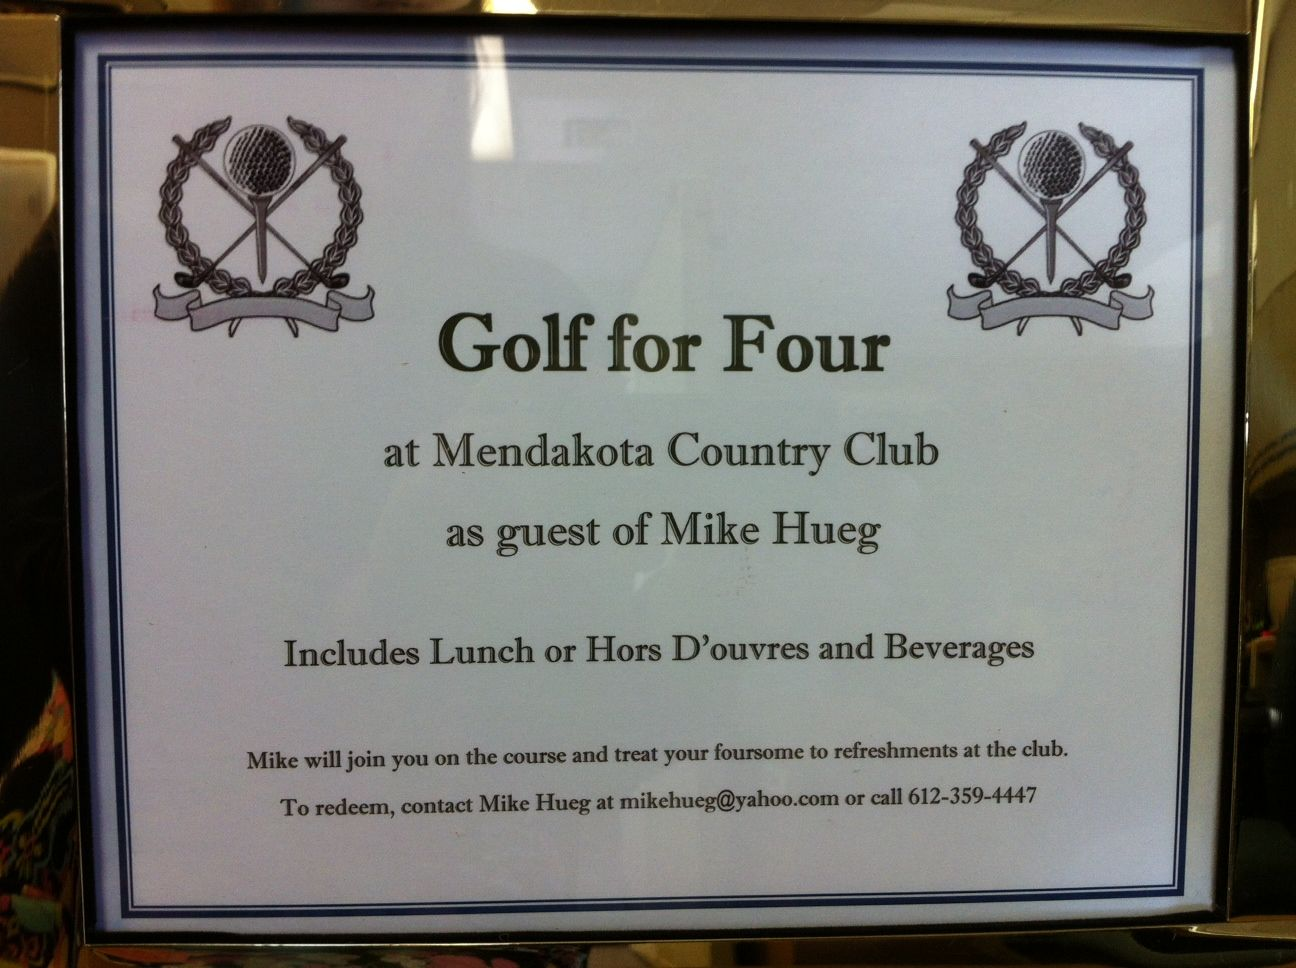 Board Member Mike Hueg Has Generously Donated A Round Of Golf For Four Plus Lunch Or Appetizers At Mendakota Country Club Silent Auction Pig Roast Raffle